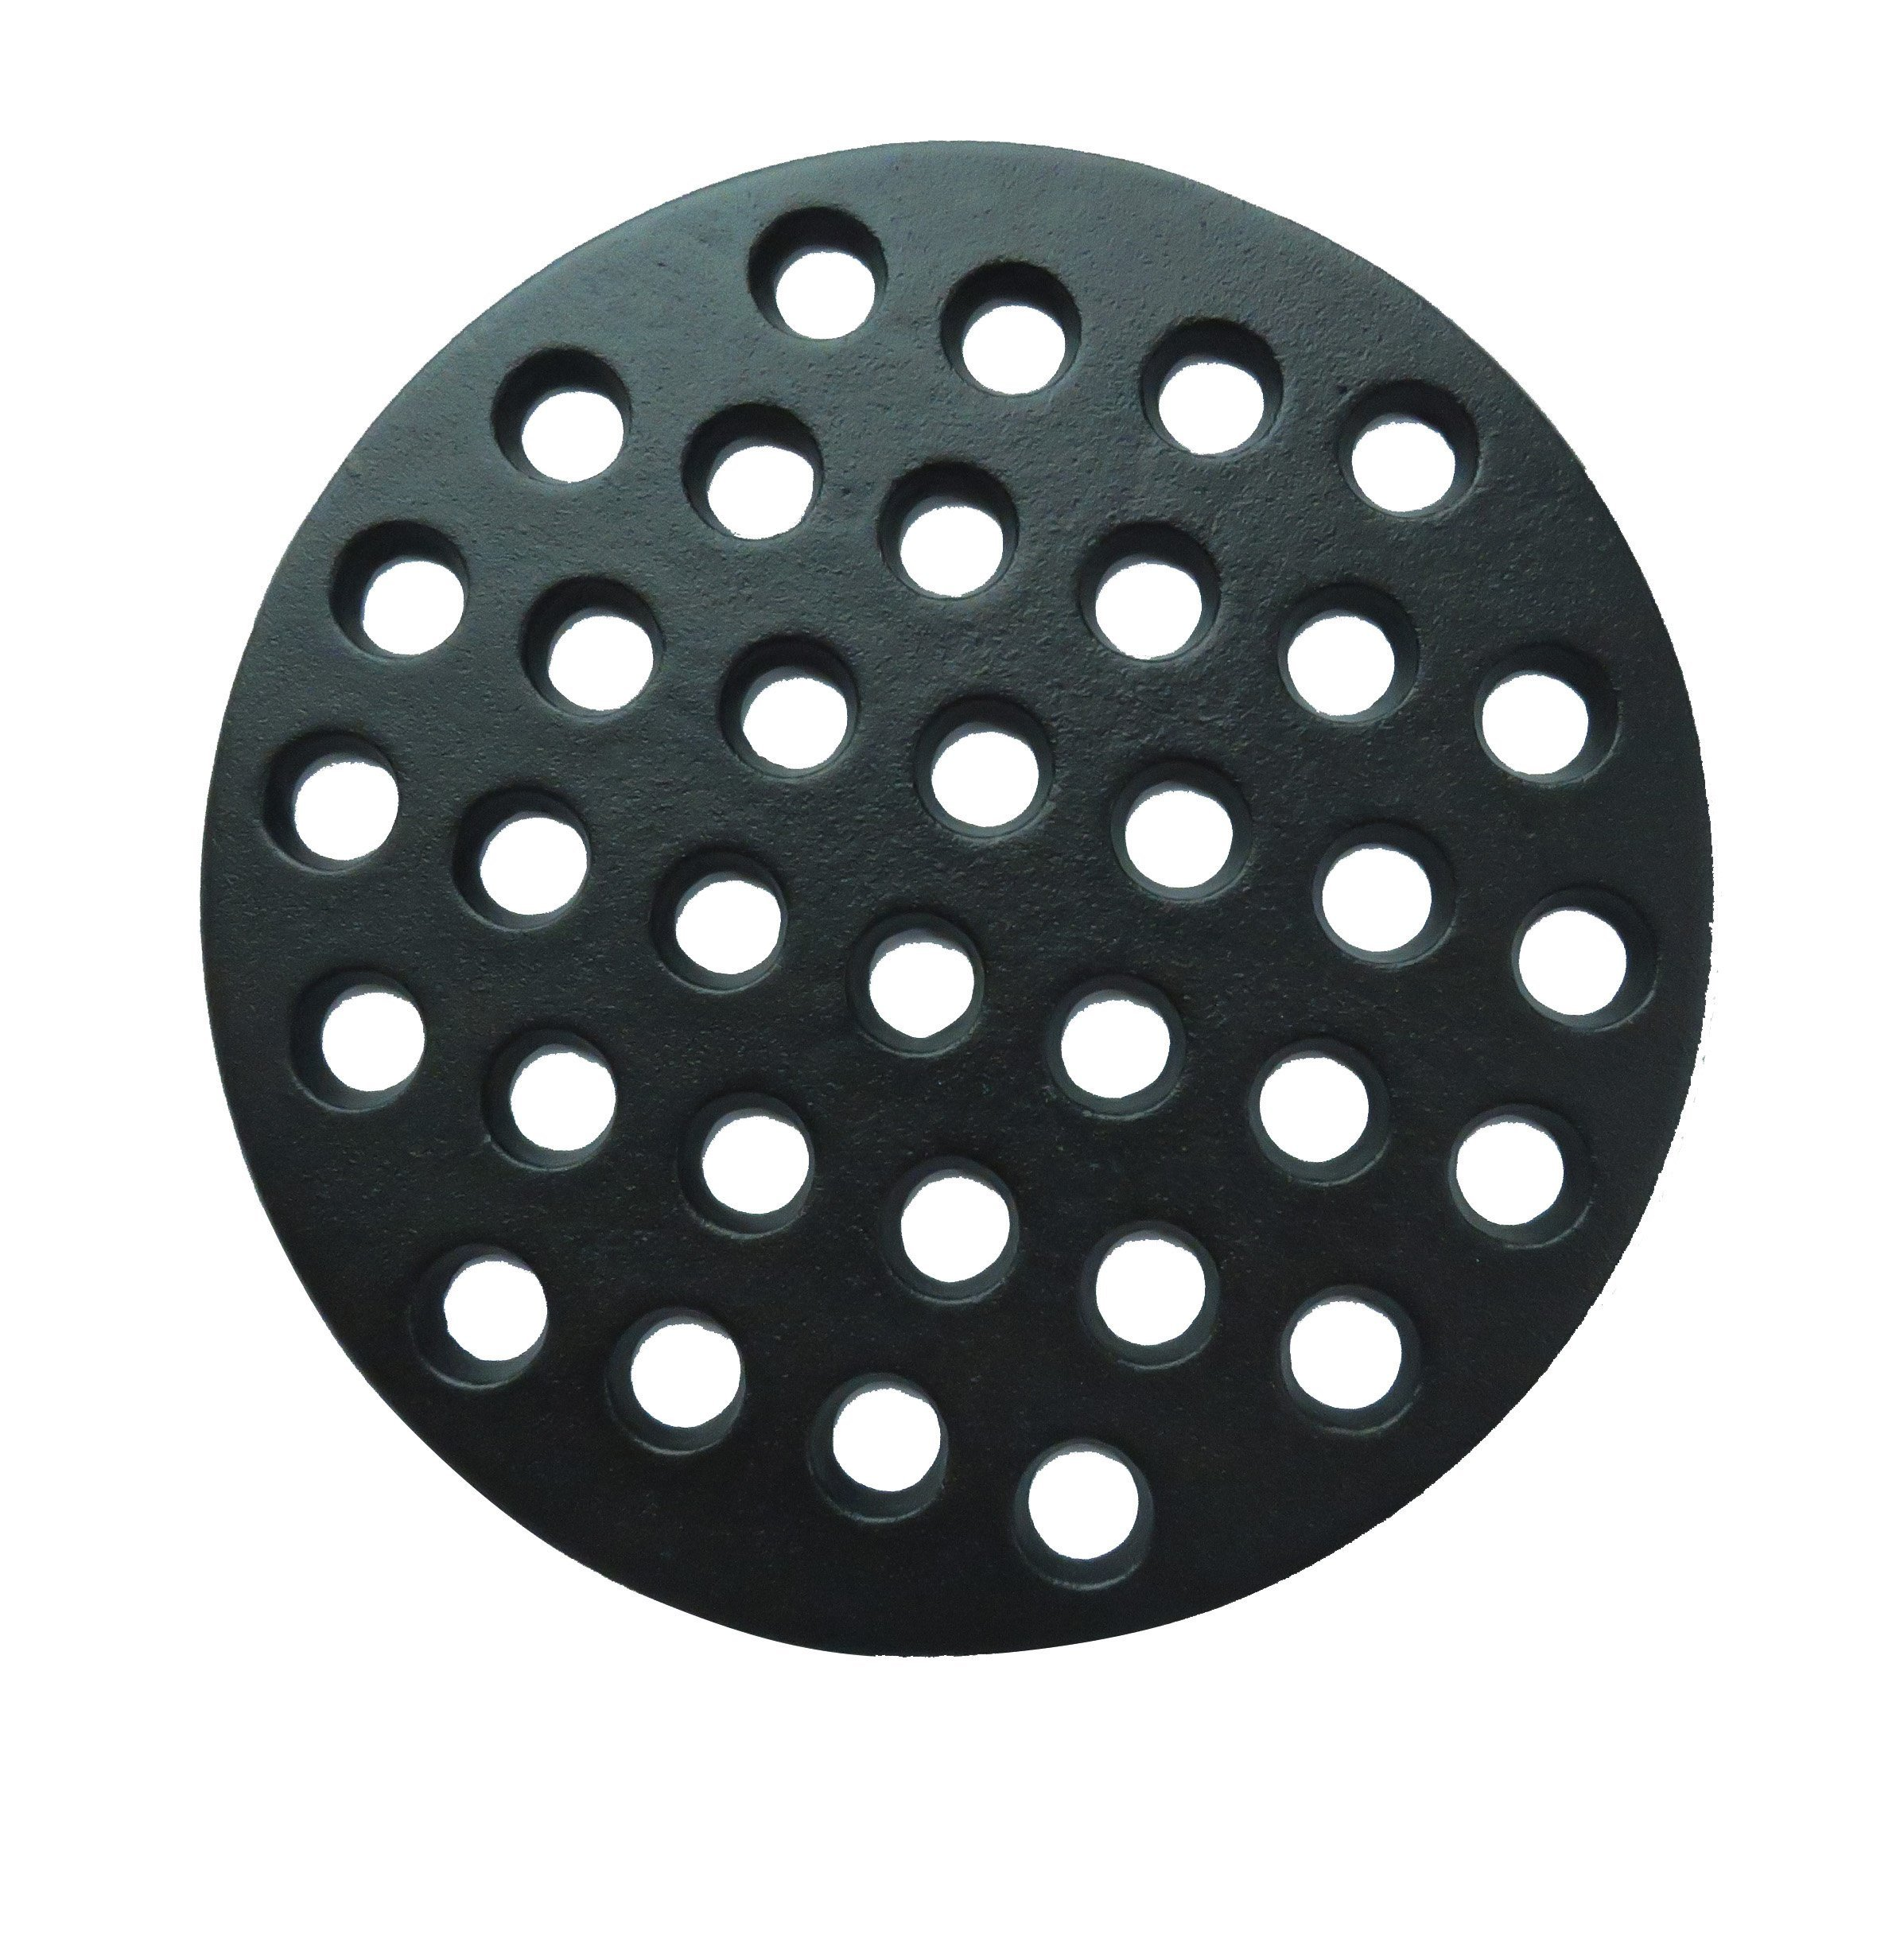 PanHy BBQ High Heat Cast Iron Charcoal Fire Grate Fits for Large Big Green Egg and kamado Joe Grill Parts Charcoal Grate Replacement Accessories-9'' LFGC Round